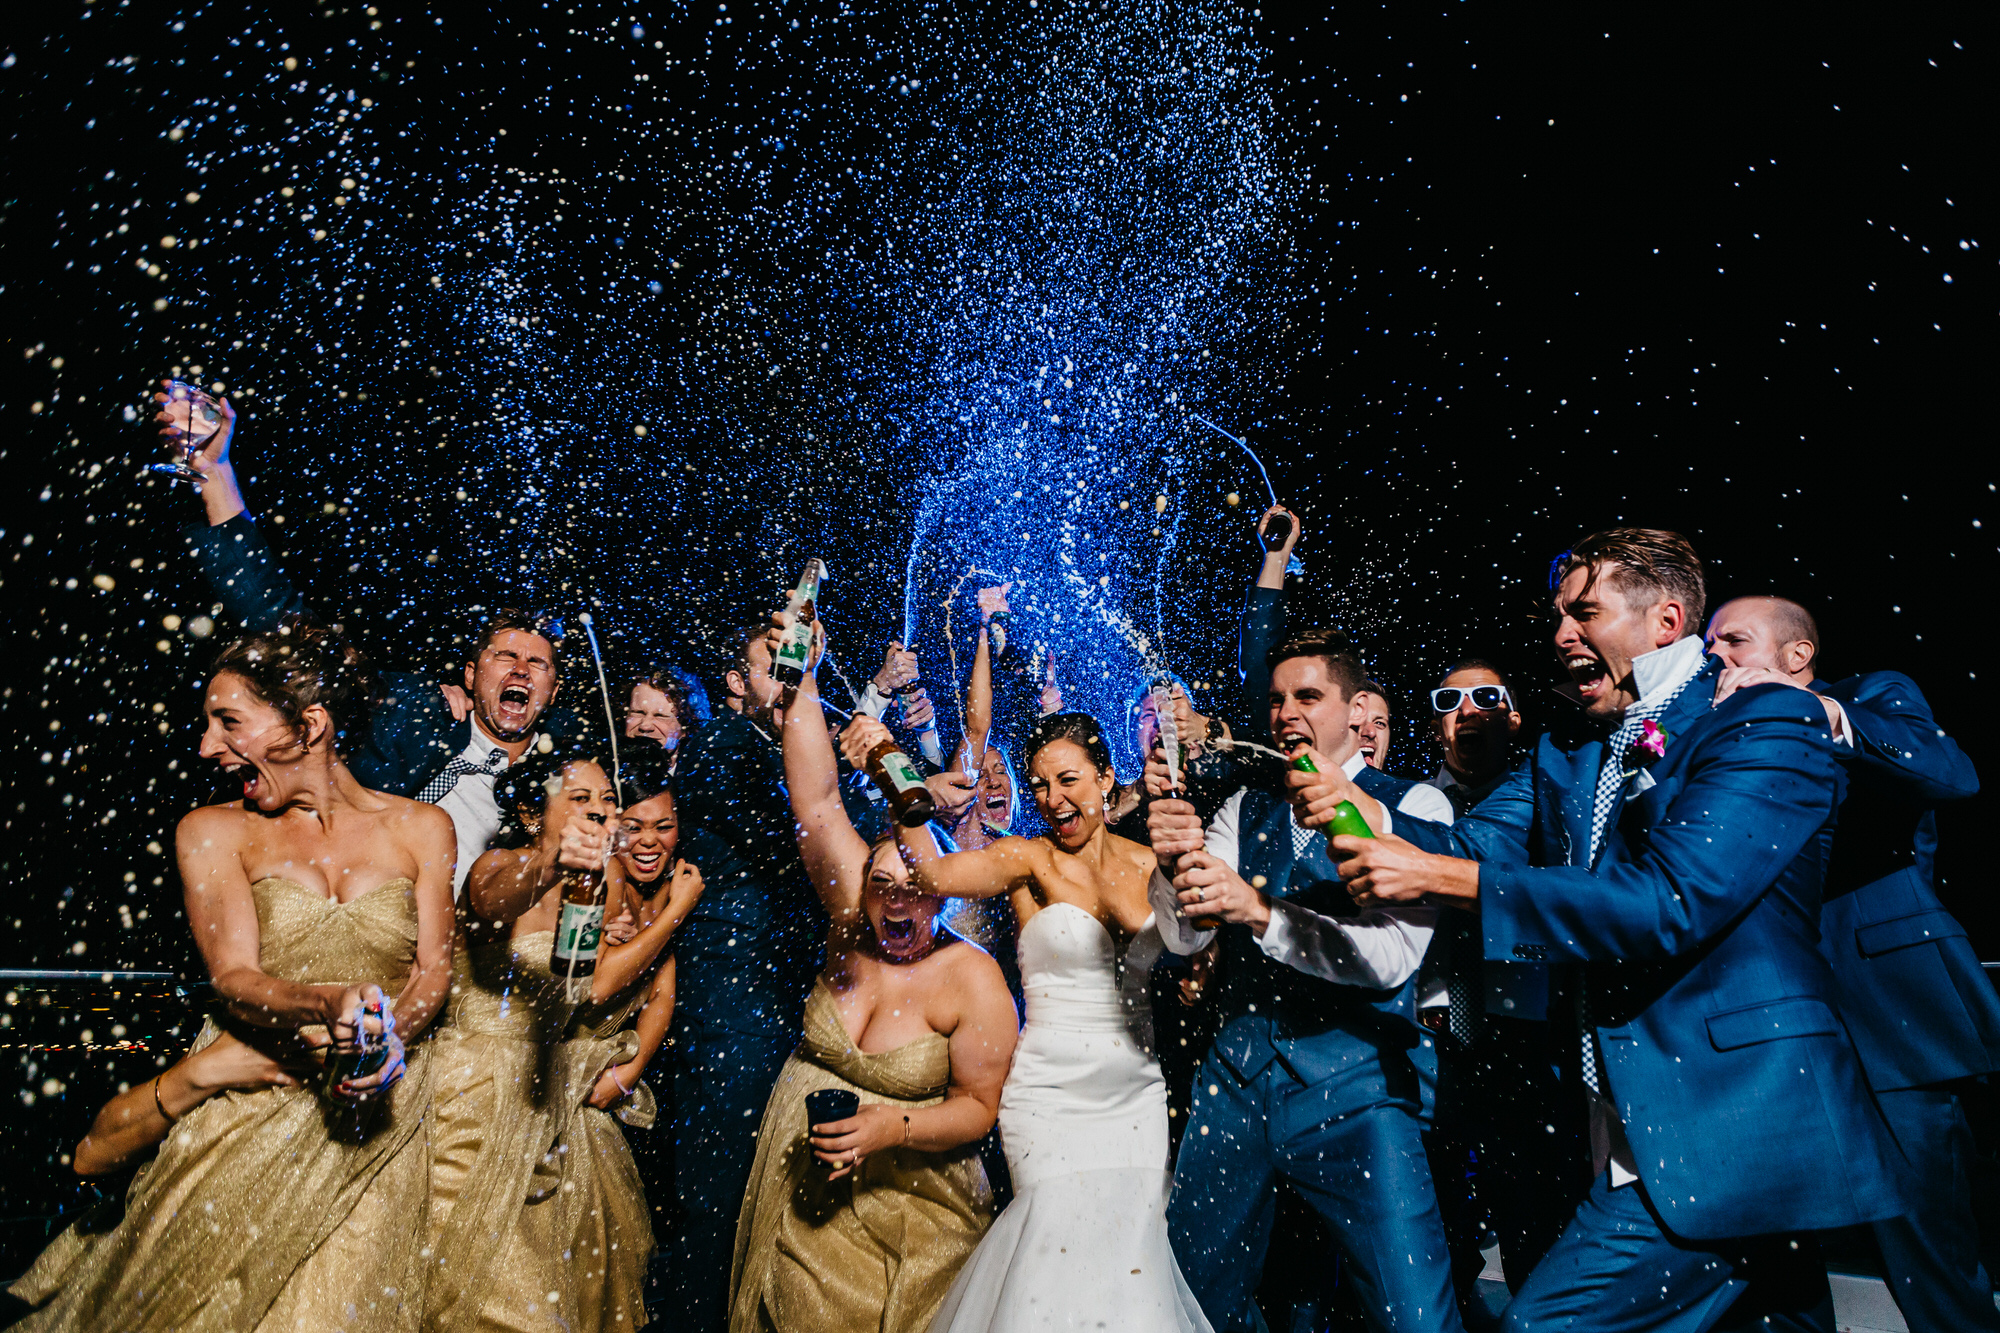 Wedding party celebrates in champagne spray - photo by Ken Pak